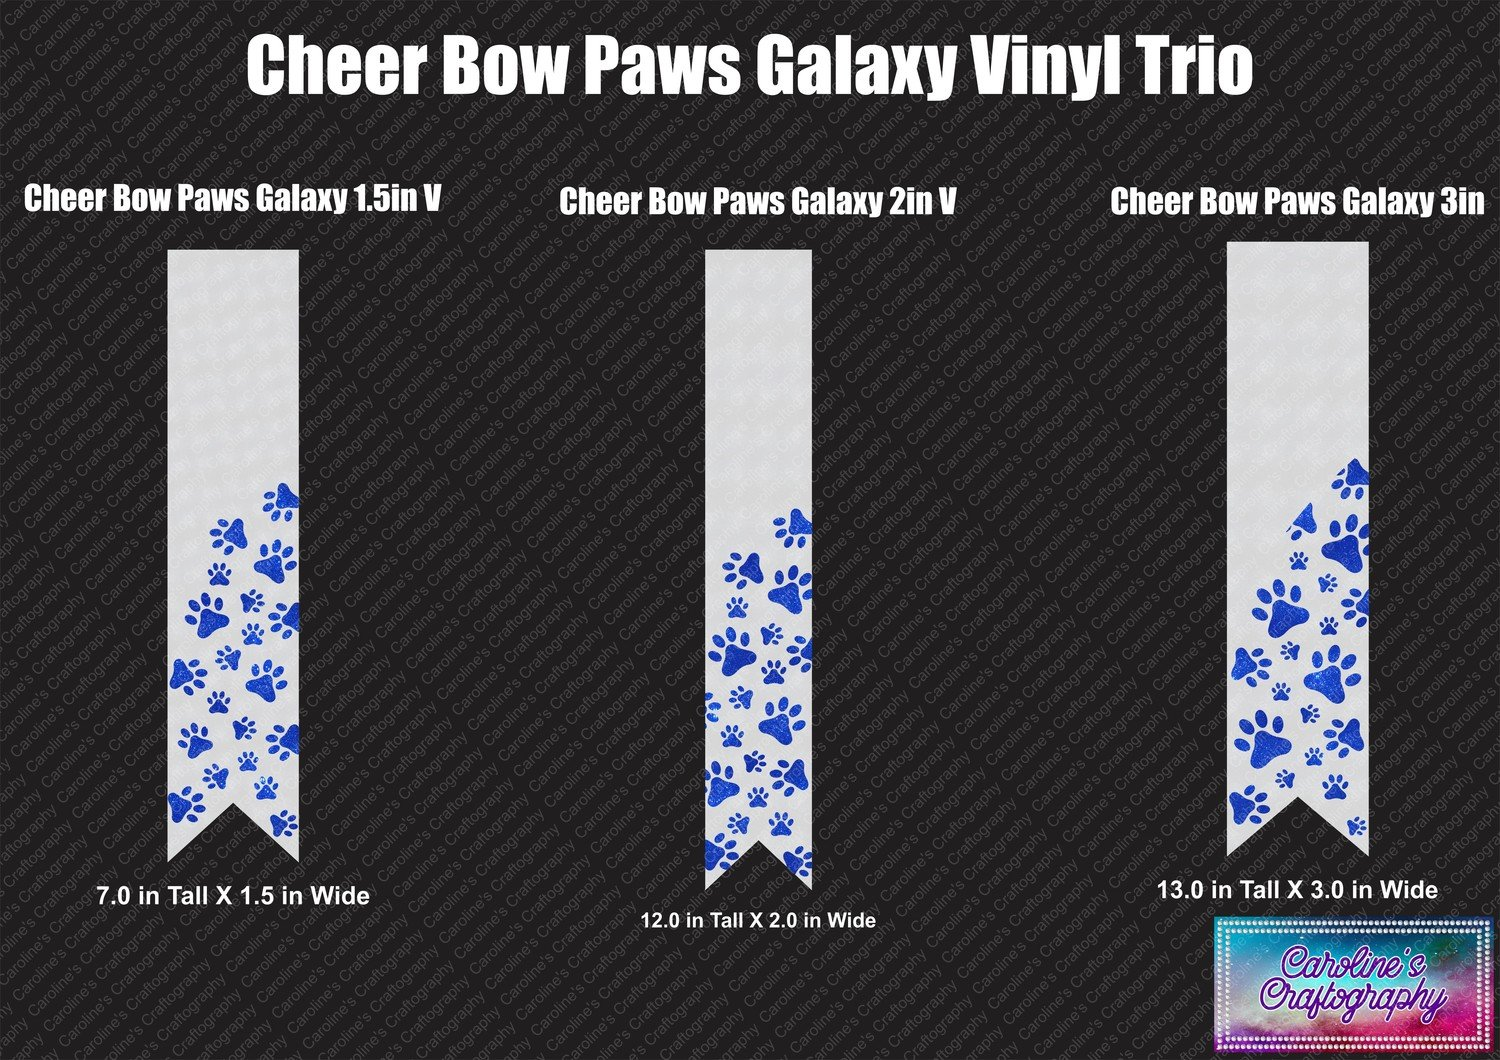 Paws Galaxy Cheer Bow Vinyl Trio